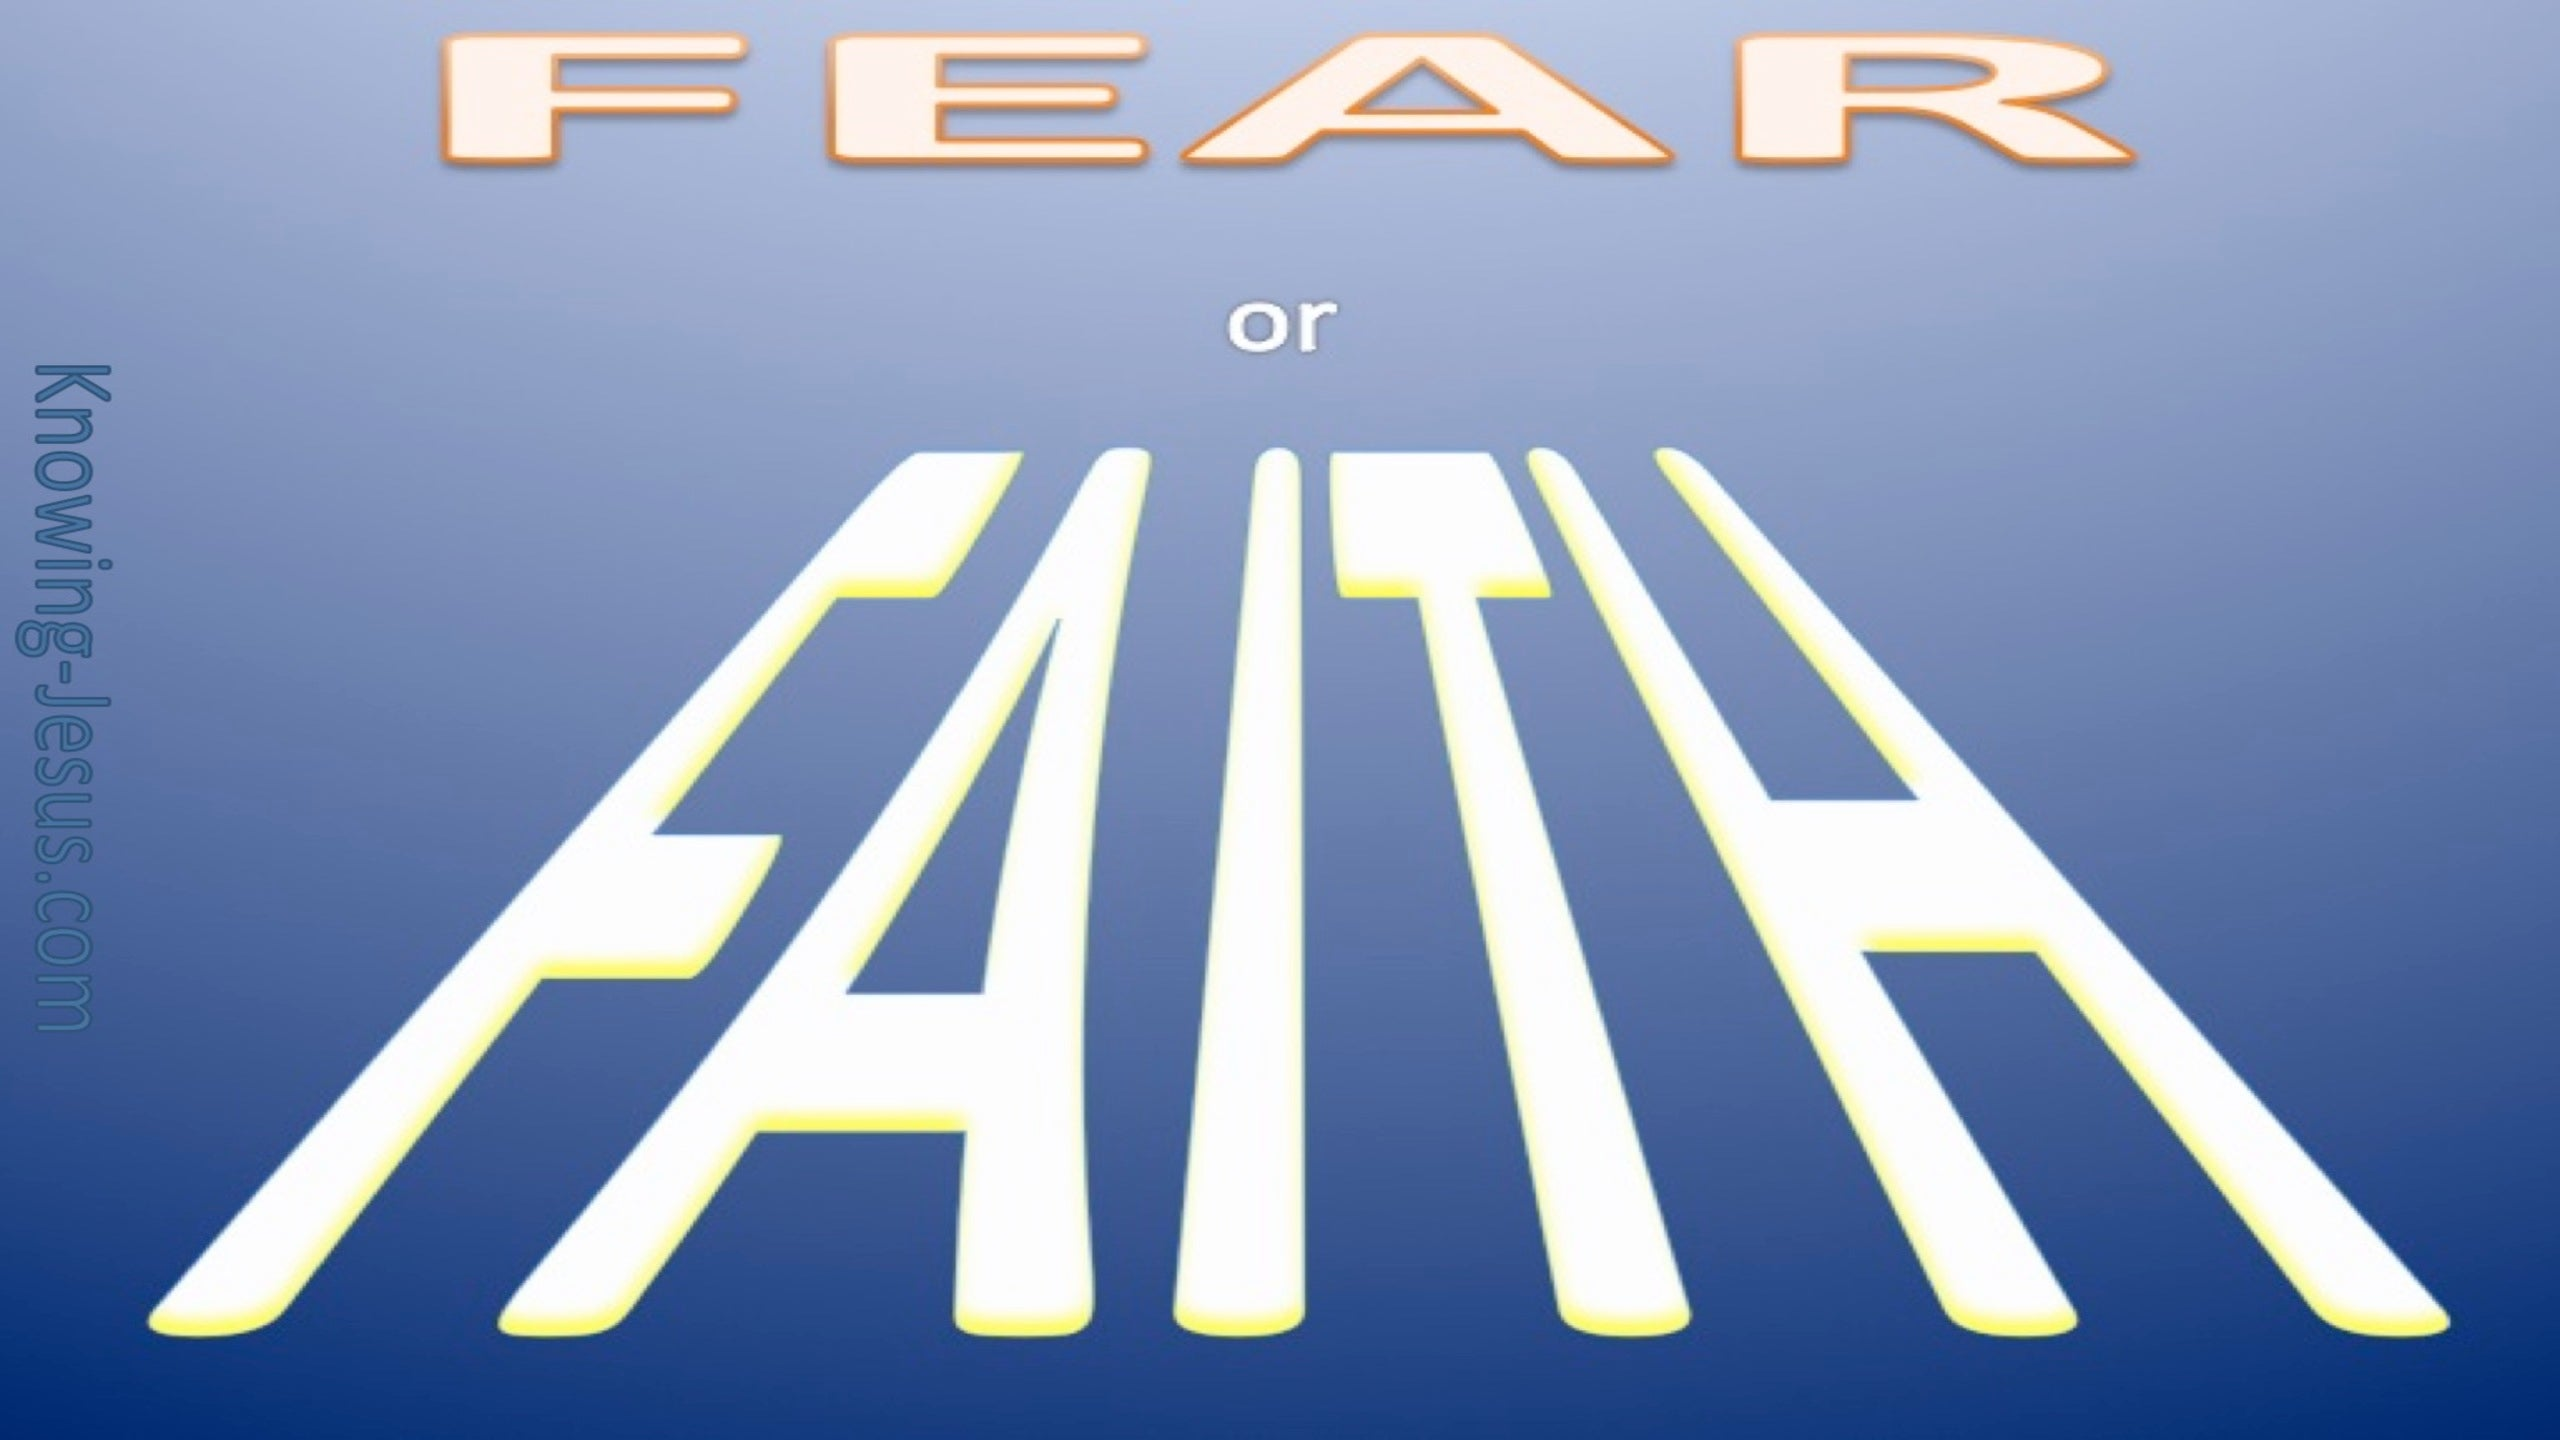 Faith Verses Fear (devotional) (blue)